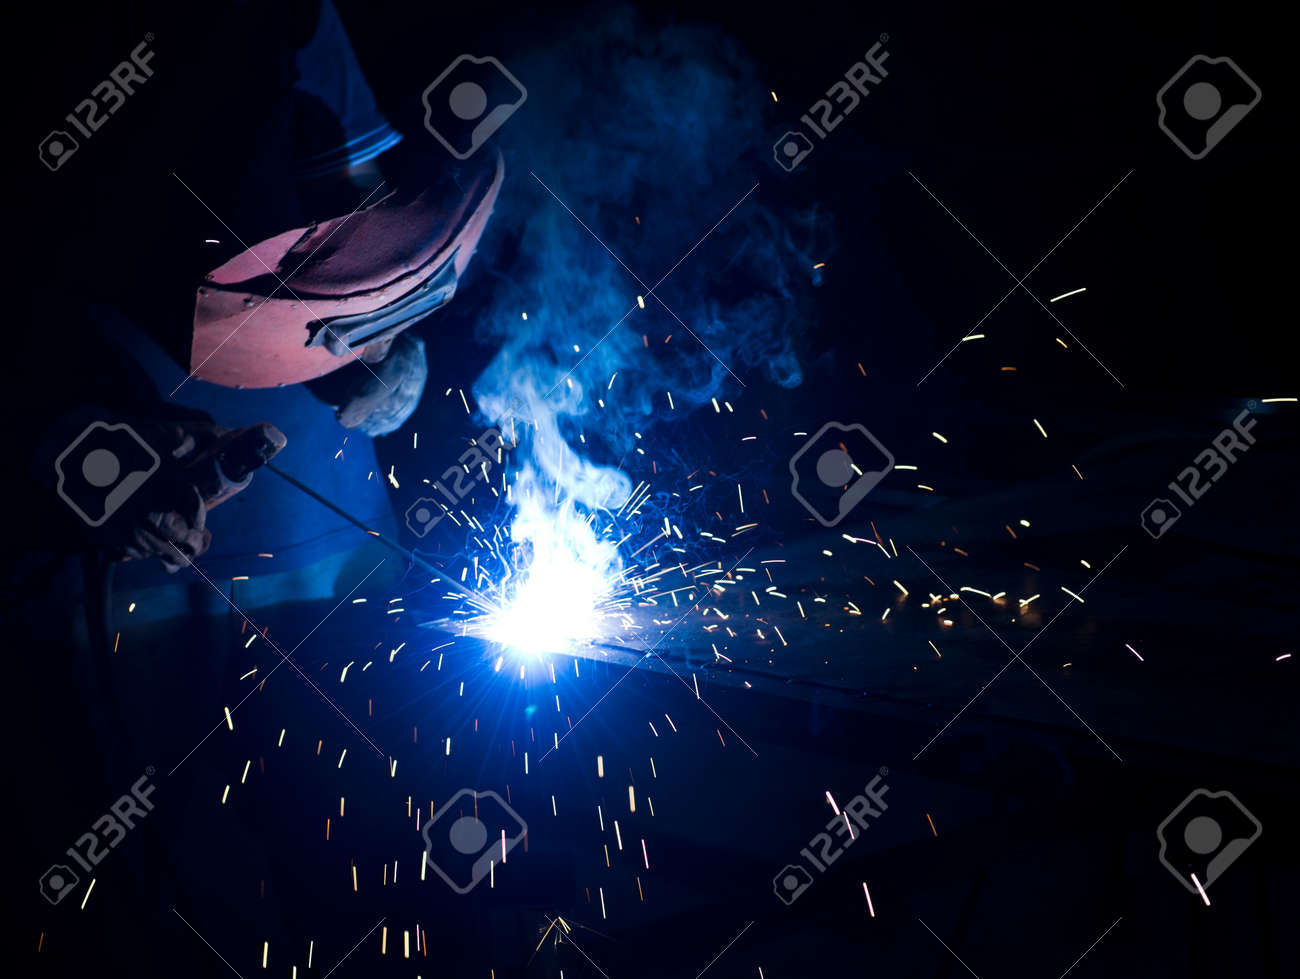 worker welding metal with sparks. Stock Photo - 19609996